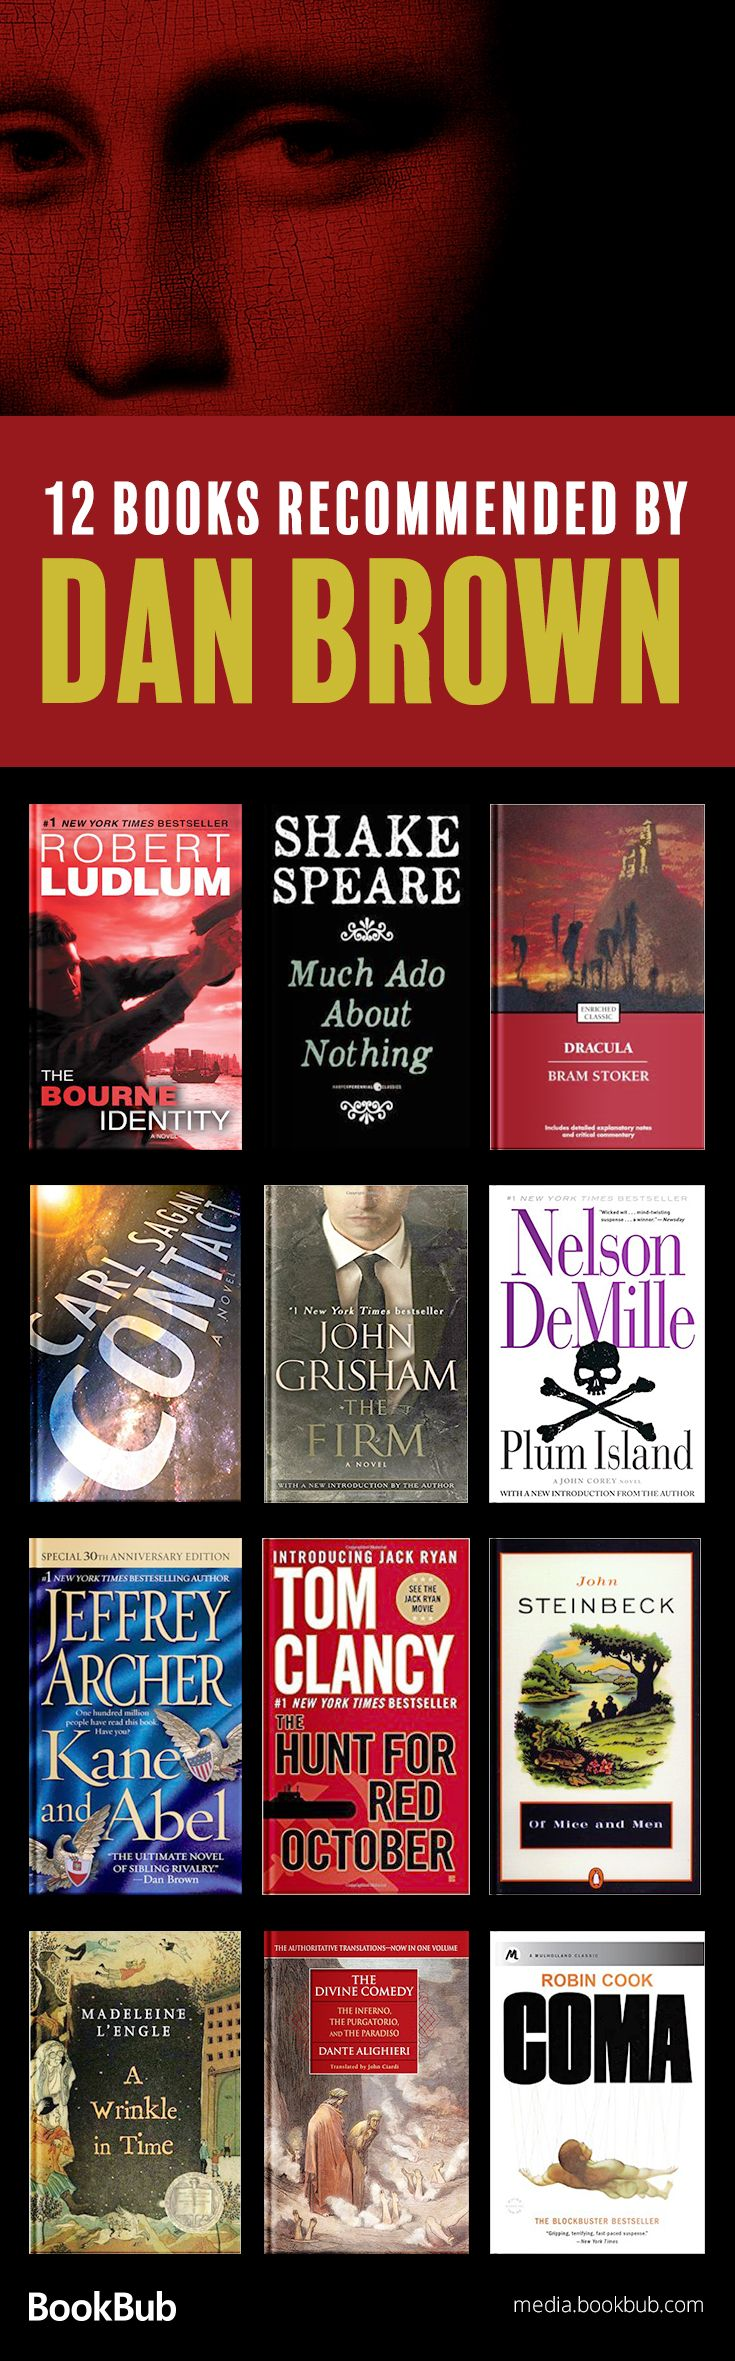 12 books recommended by bestselling author Dan Brown. If youre looking for books like Dan Brown novels, this is the reading list for you.